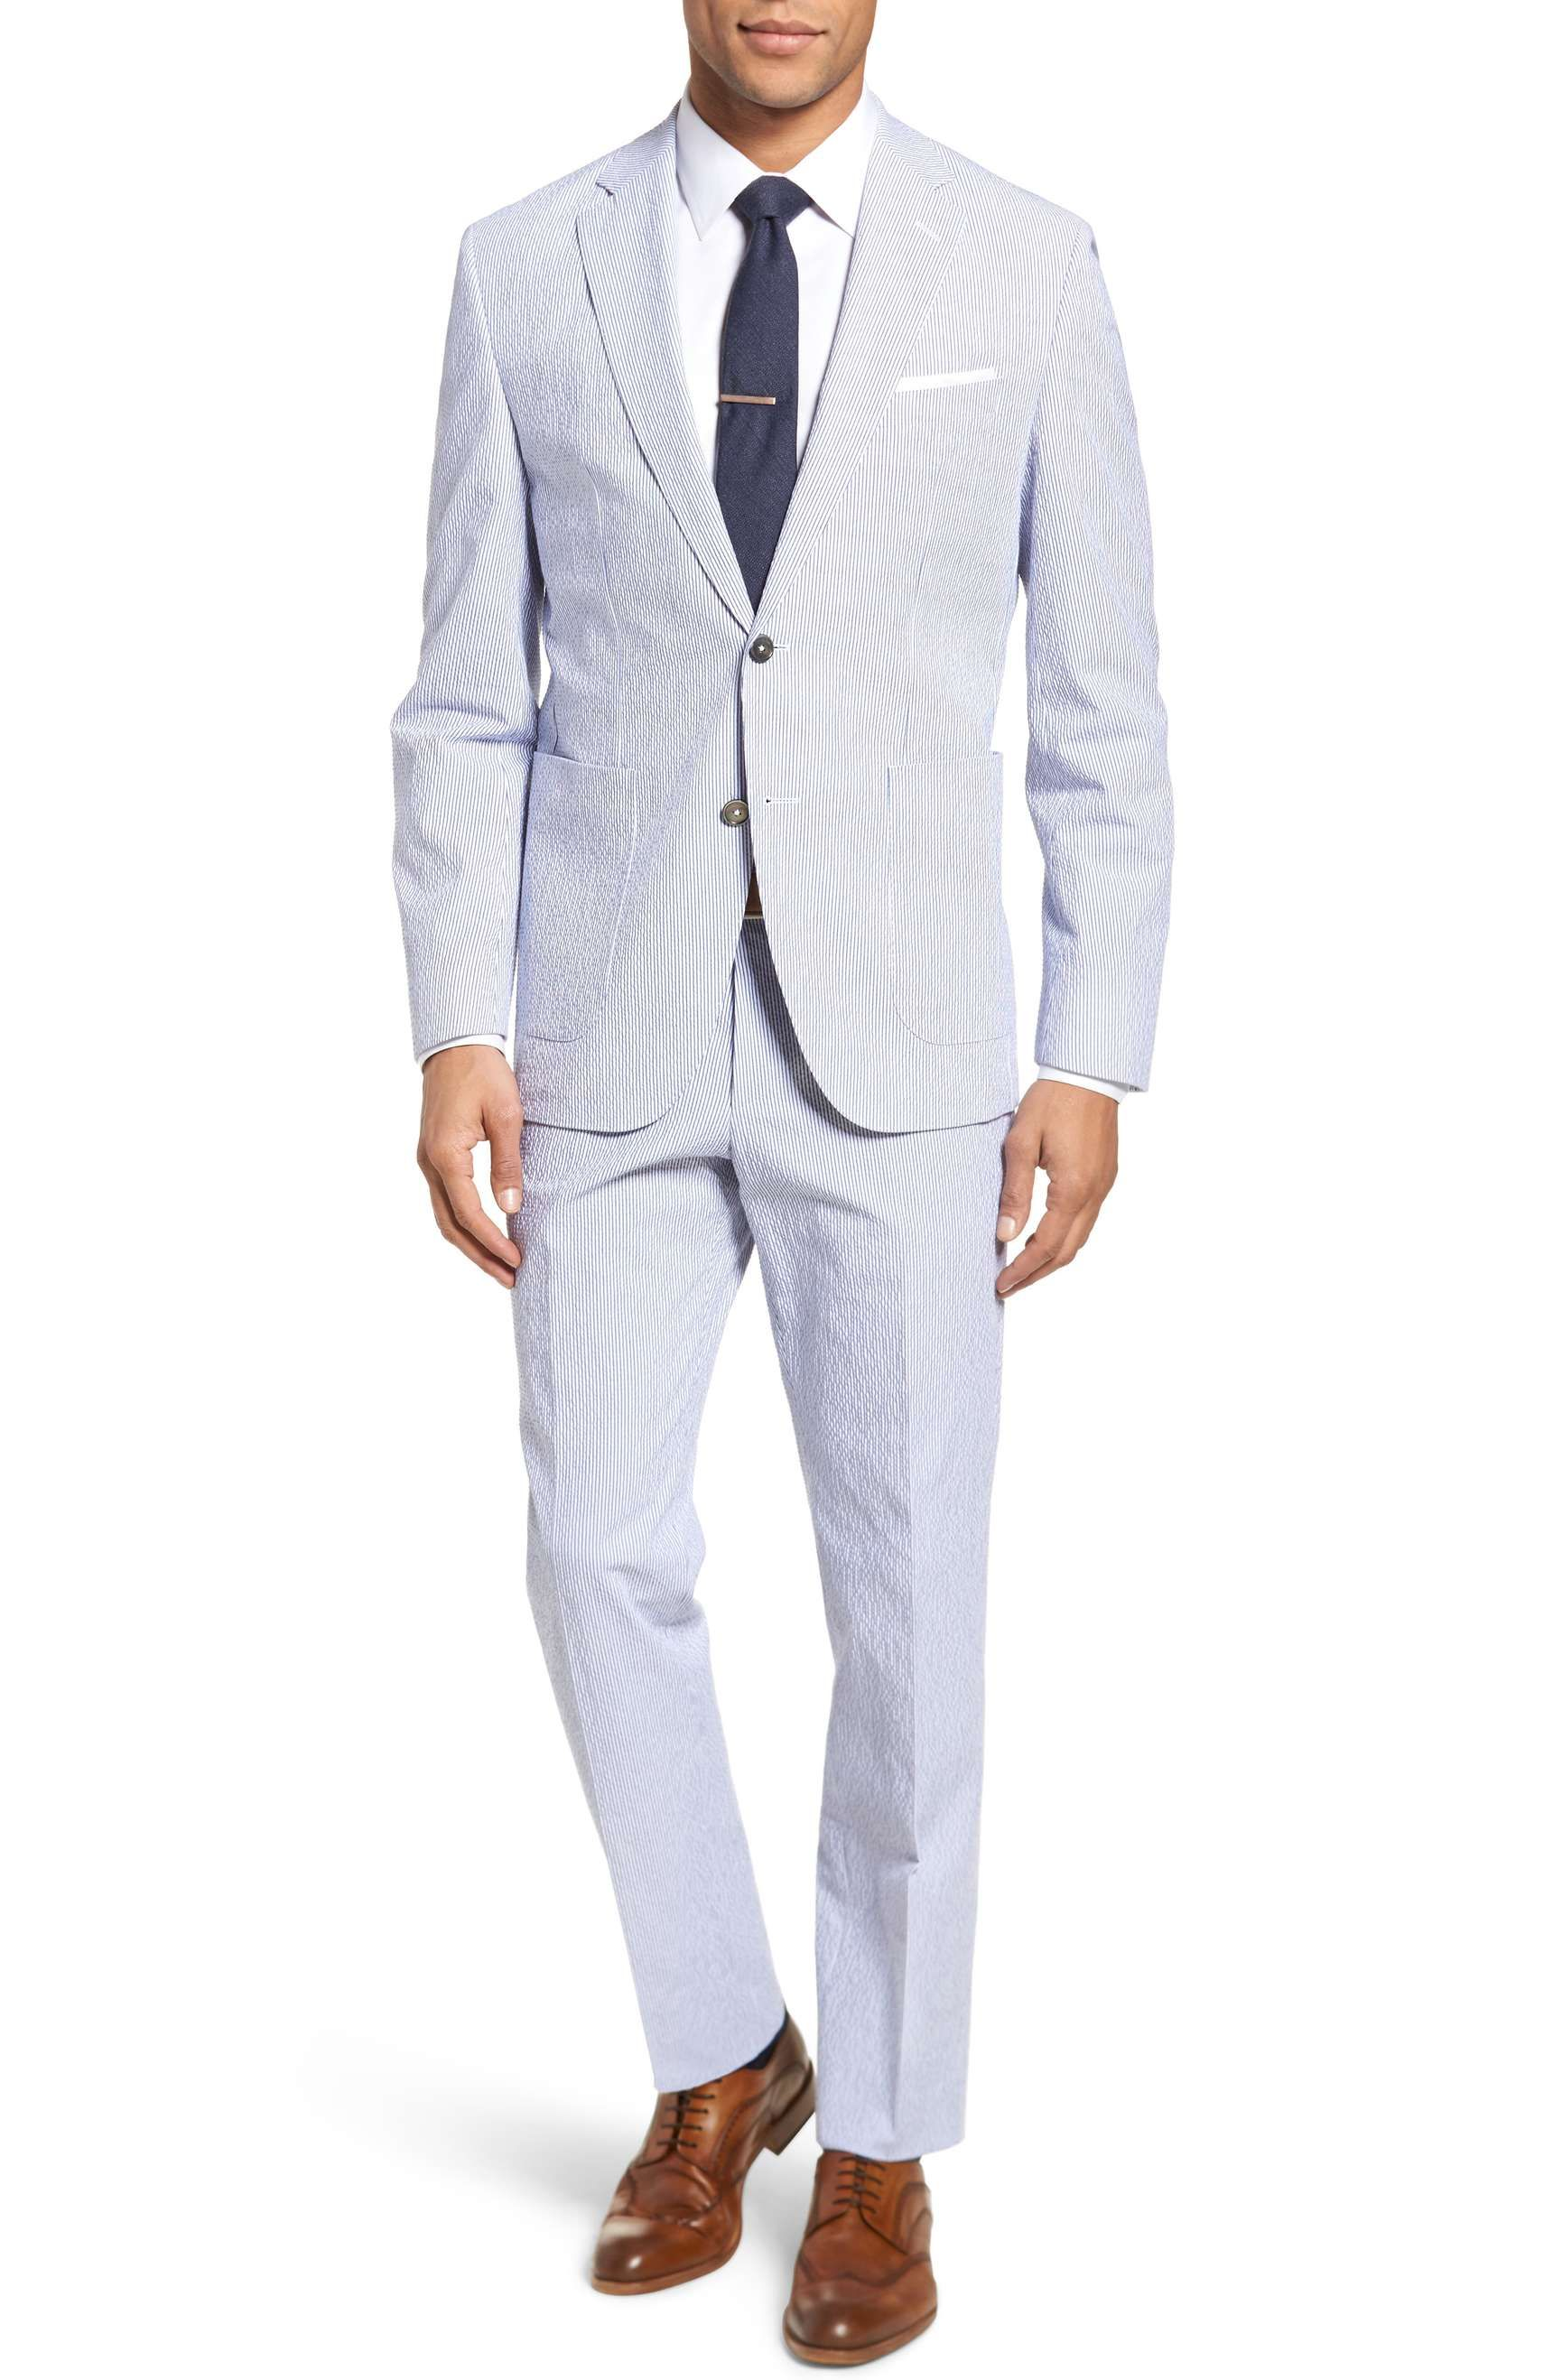 6 Mens Suits Perfect For Summer Weddings 2019 Cheap Designer Suits For Men Summer Wedding Suits Modern Mens Suits Groom Suit Summer